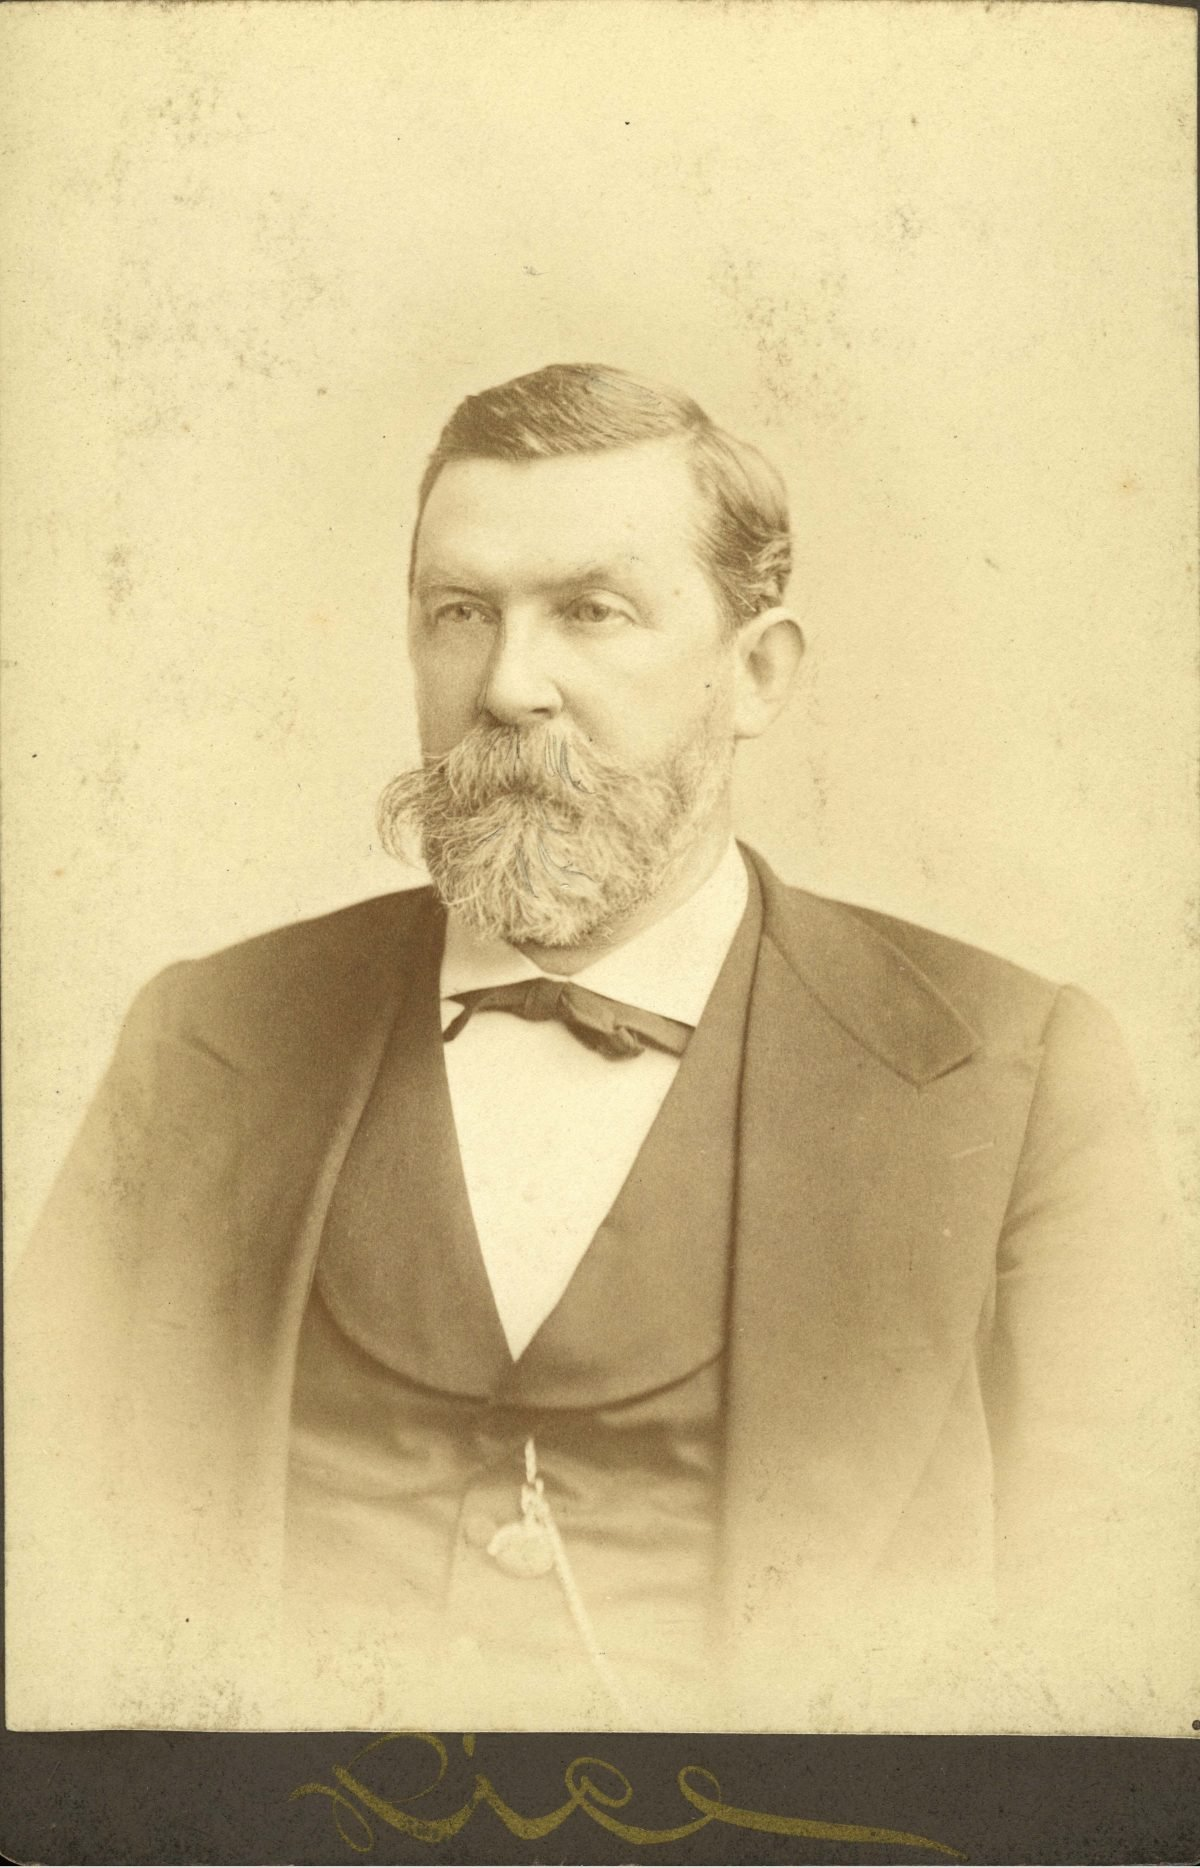 Charles S. Venable